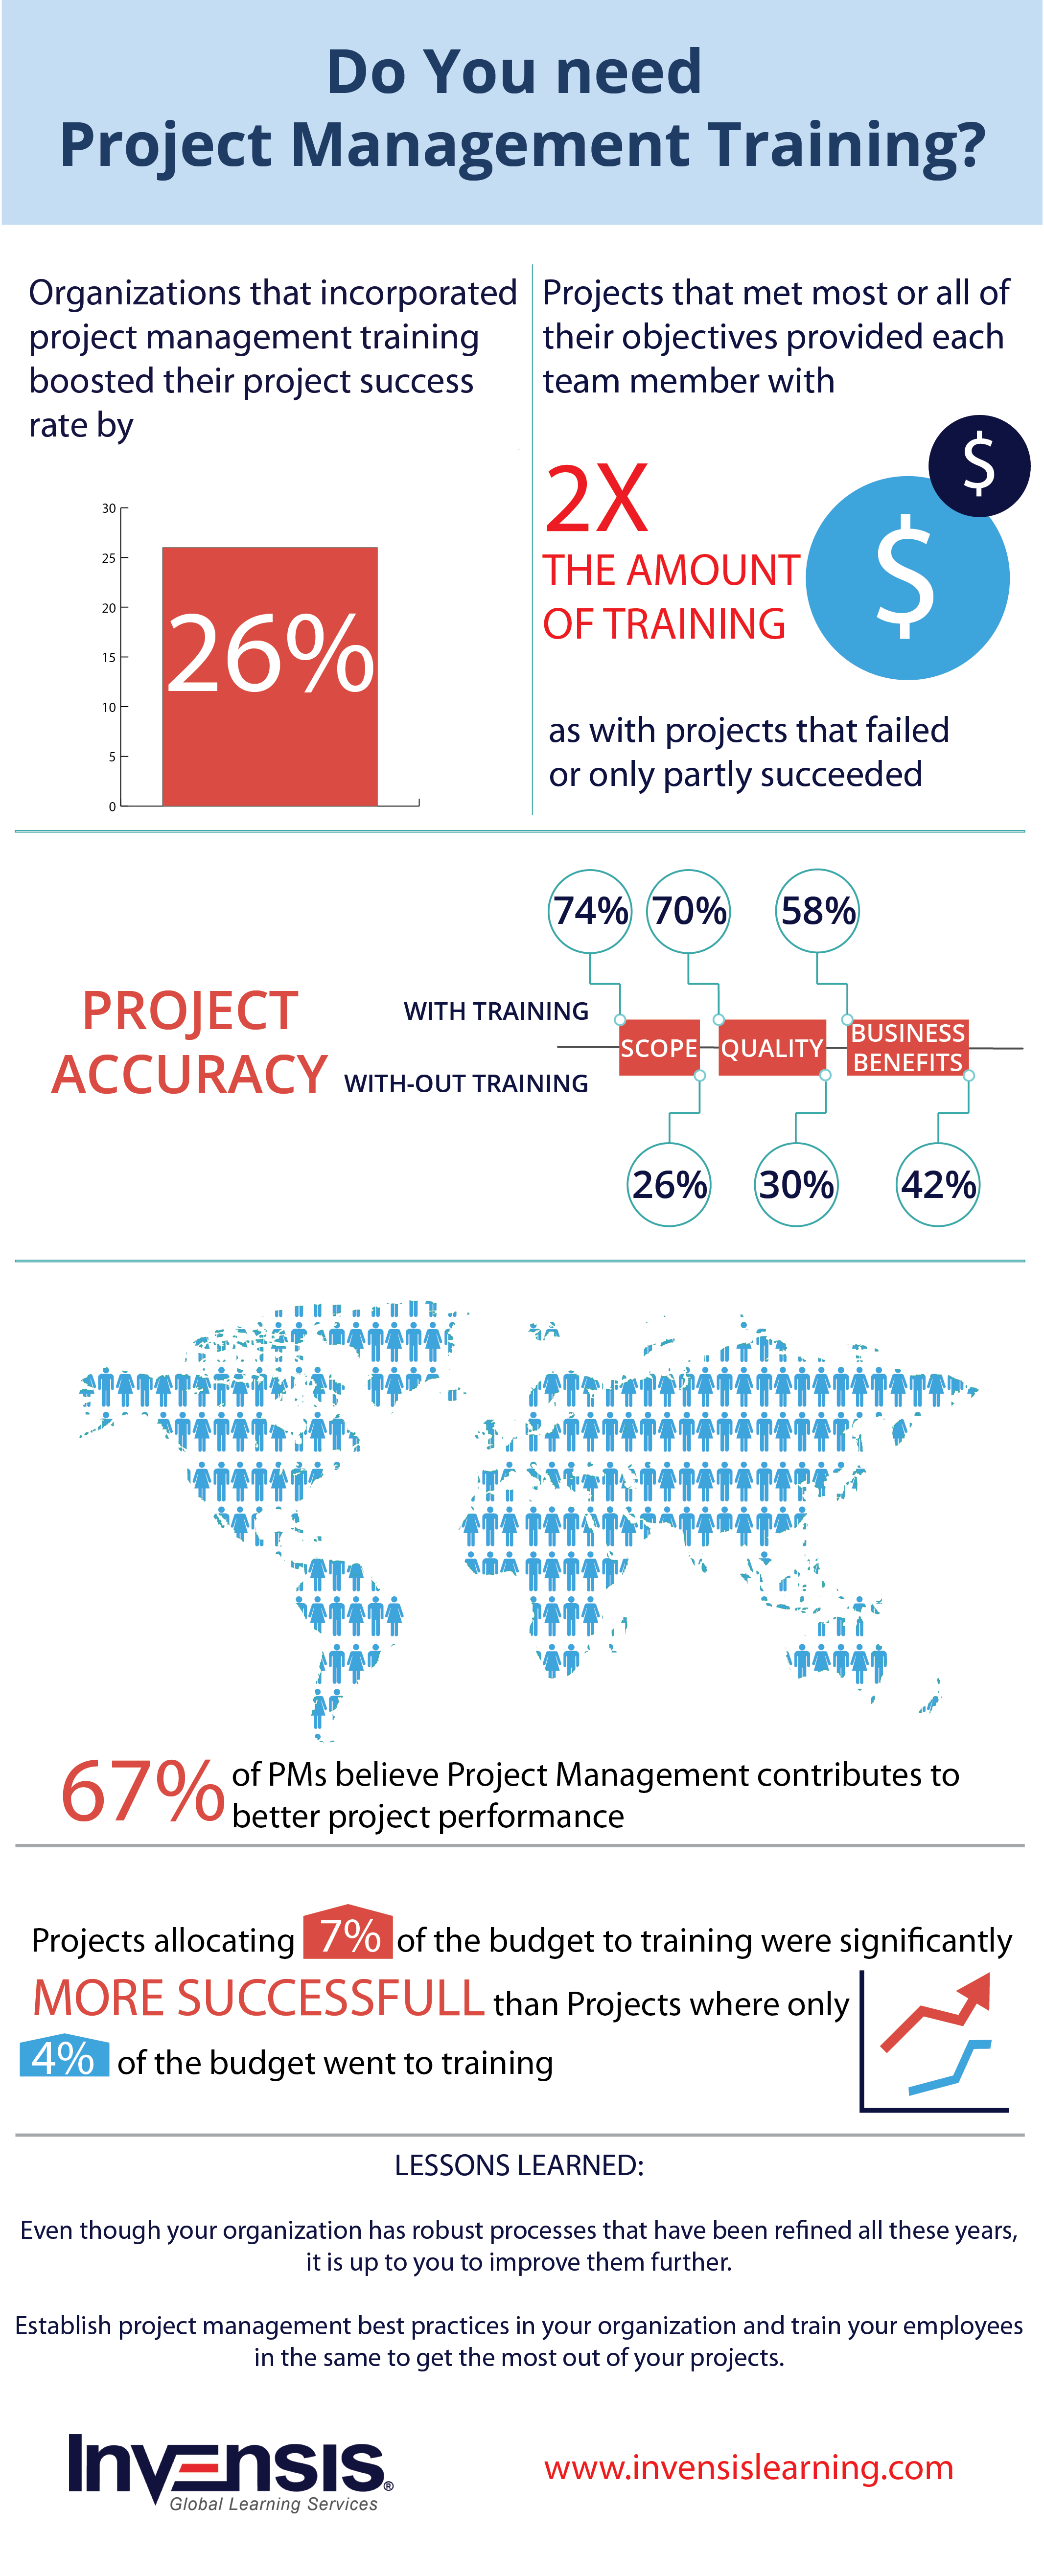 The importance of project management training infographic http an infographic depicting why you need project management certification training understand how organizations that incorporated project management training xflitez Choice Image